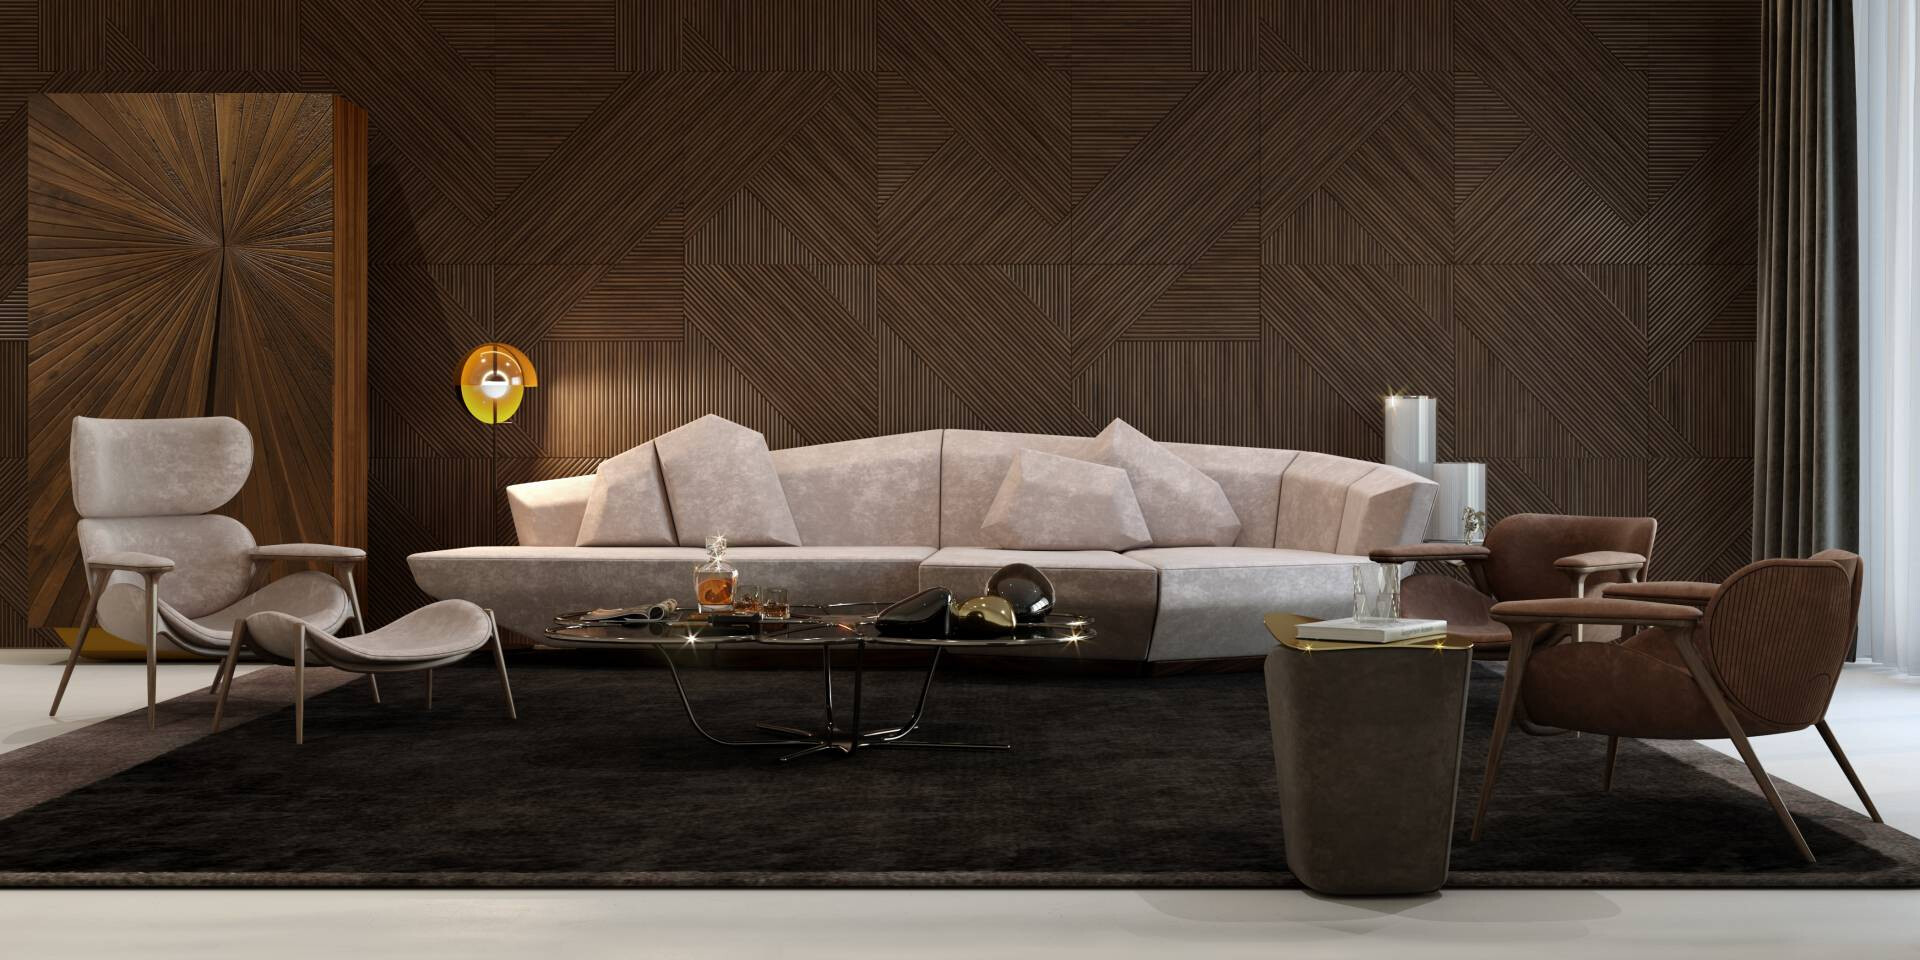 Brown tones LUXURY living room with naturalness and peaceful feeling